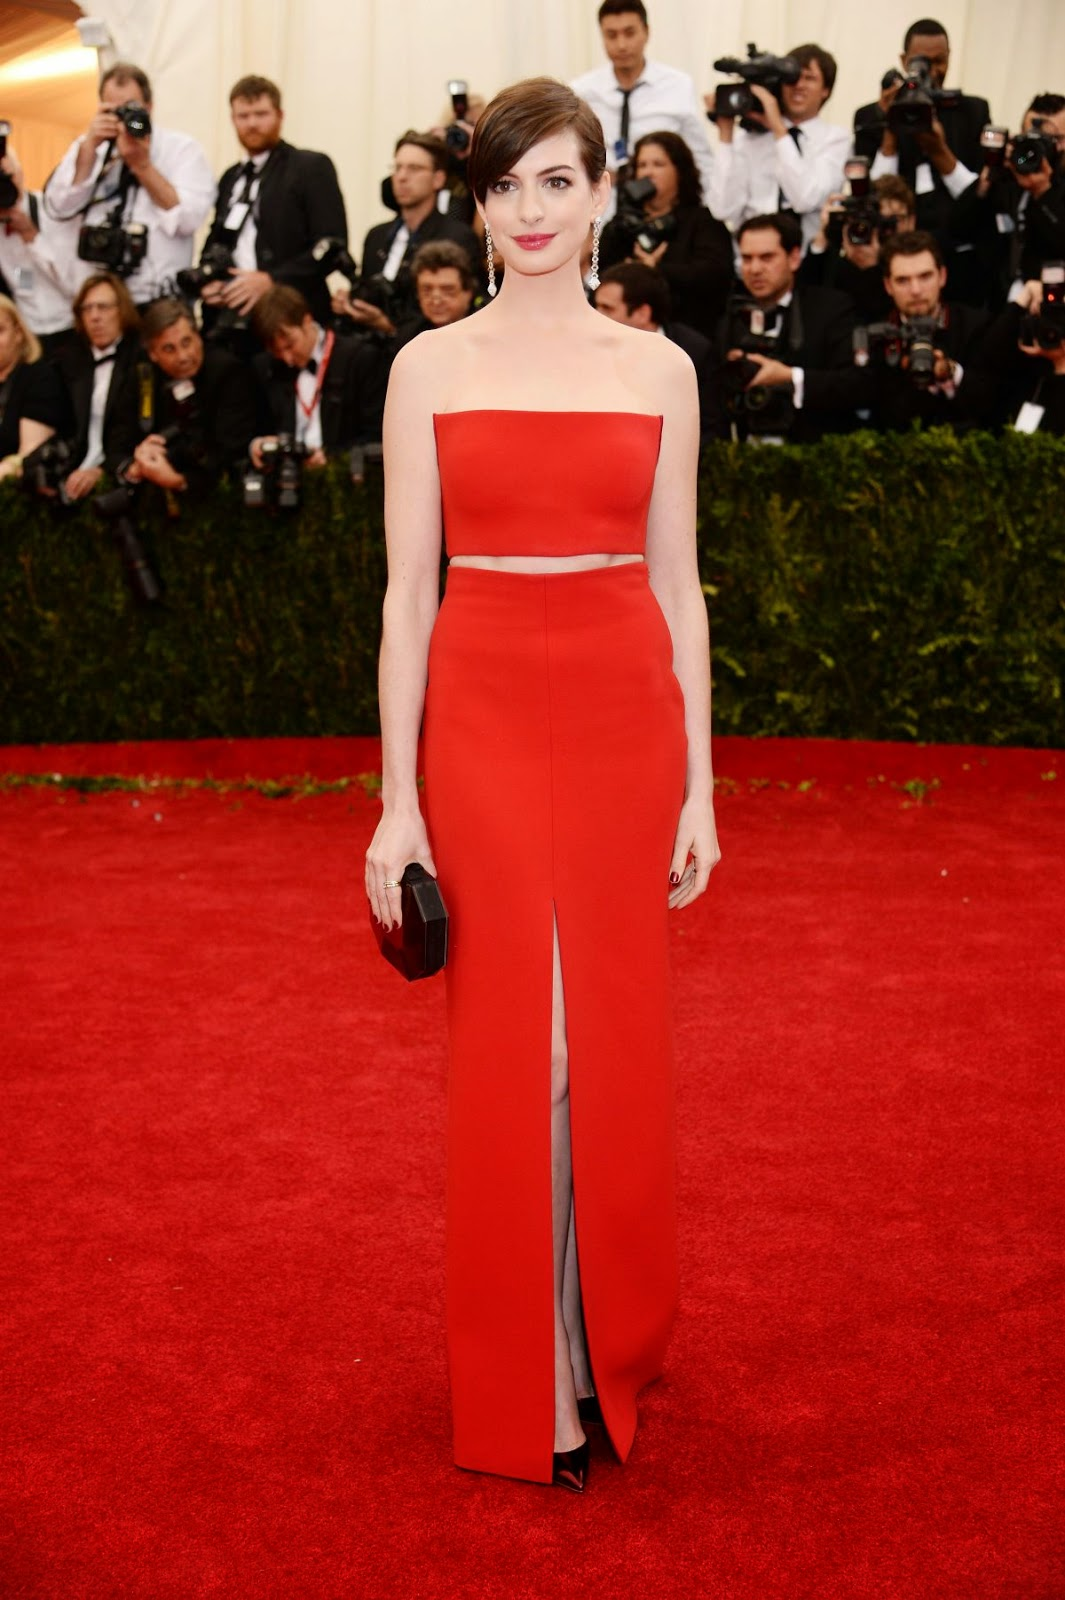 Anne Hathaway Images 2014 photo 30